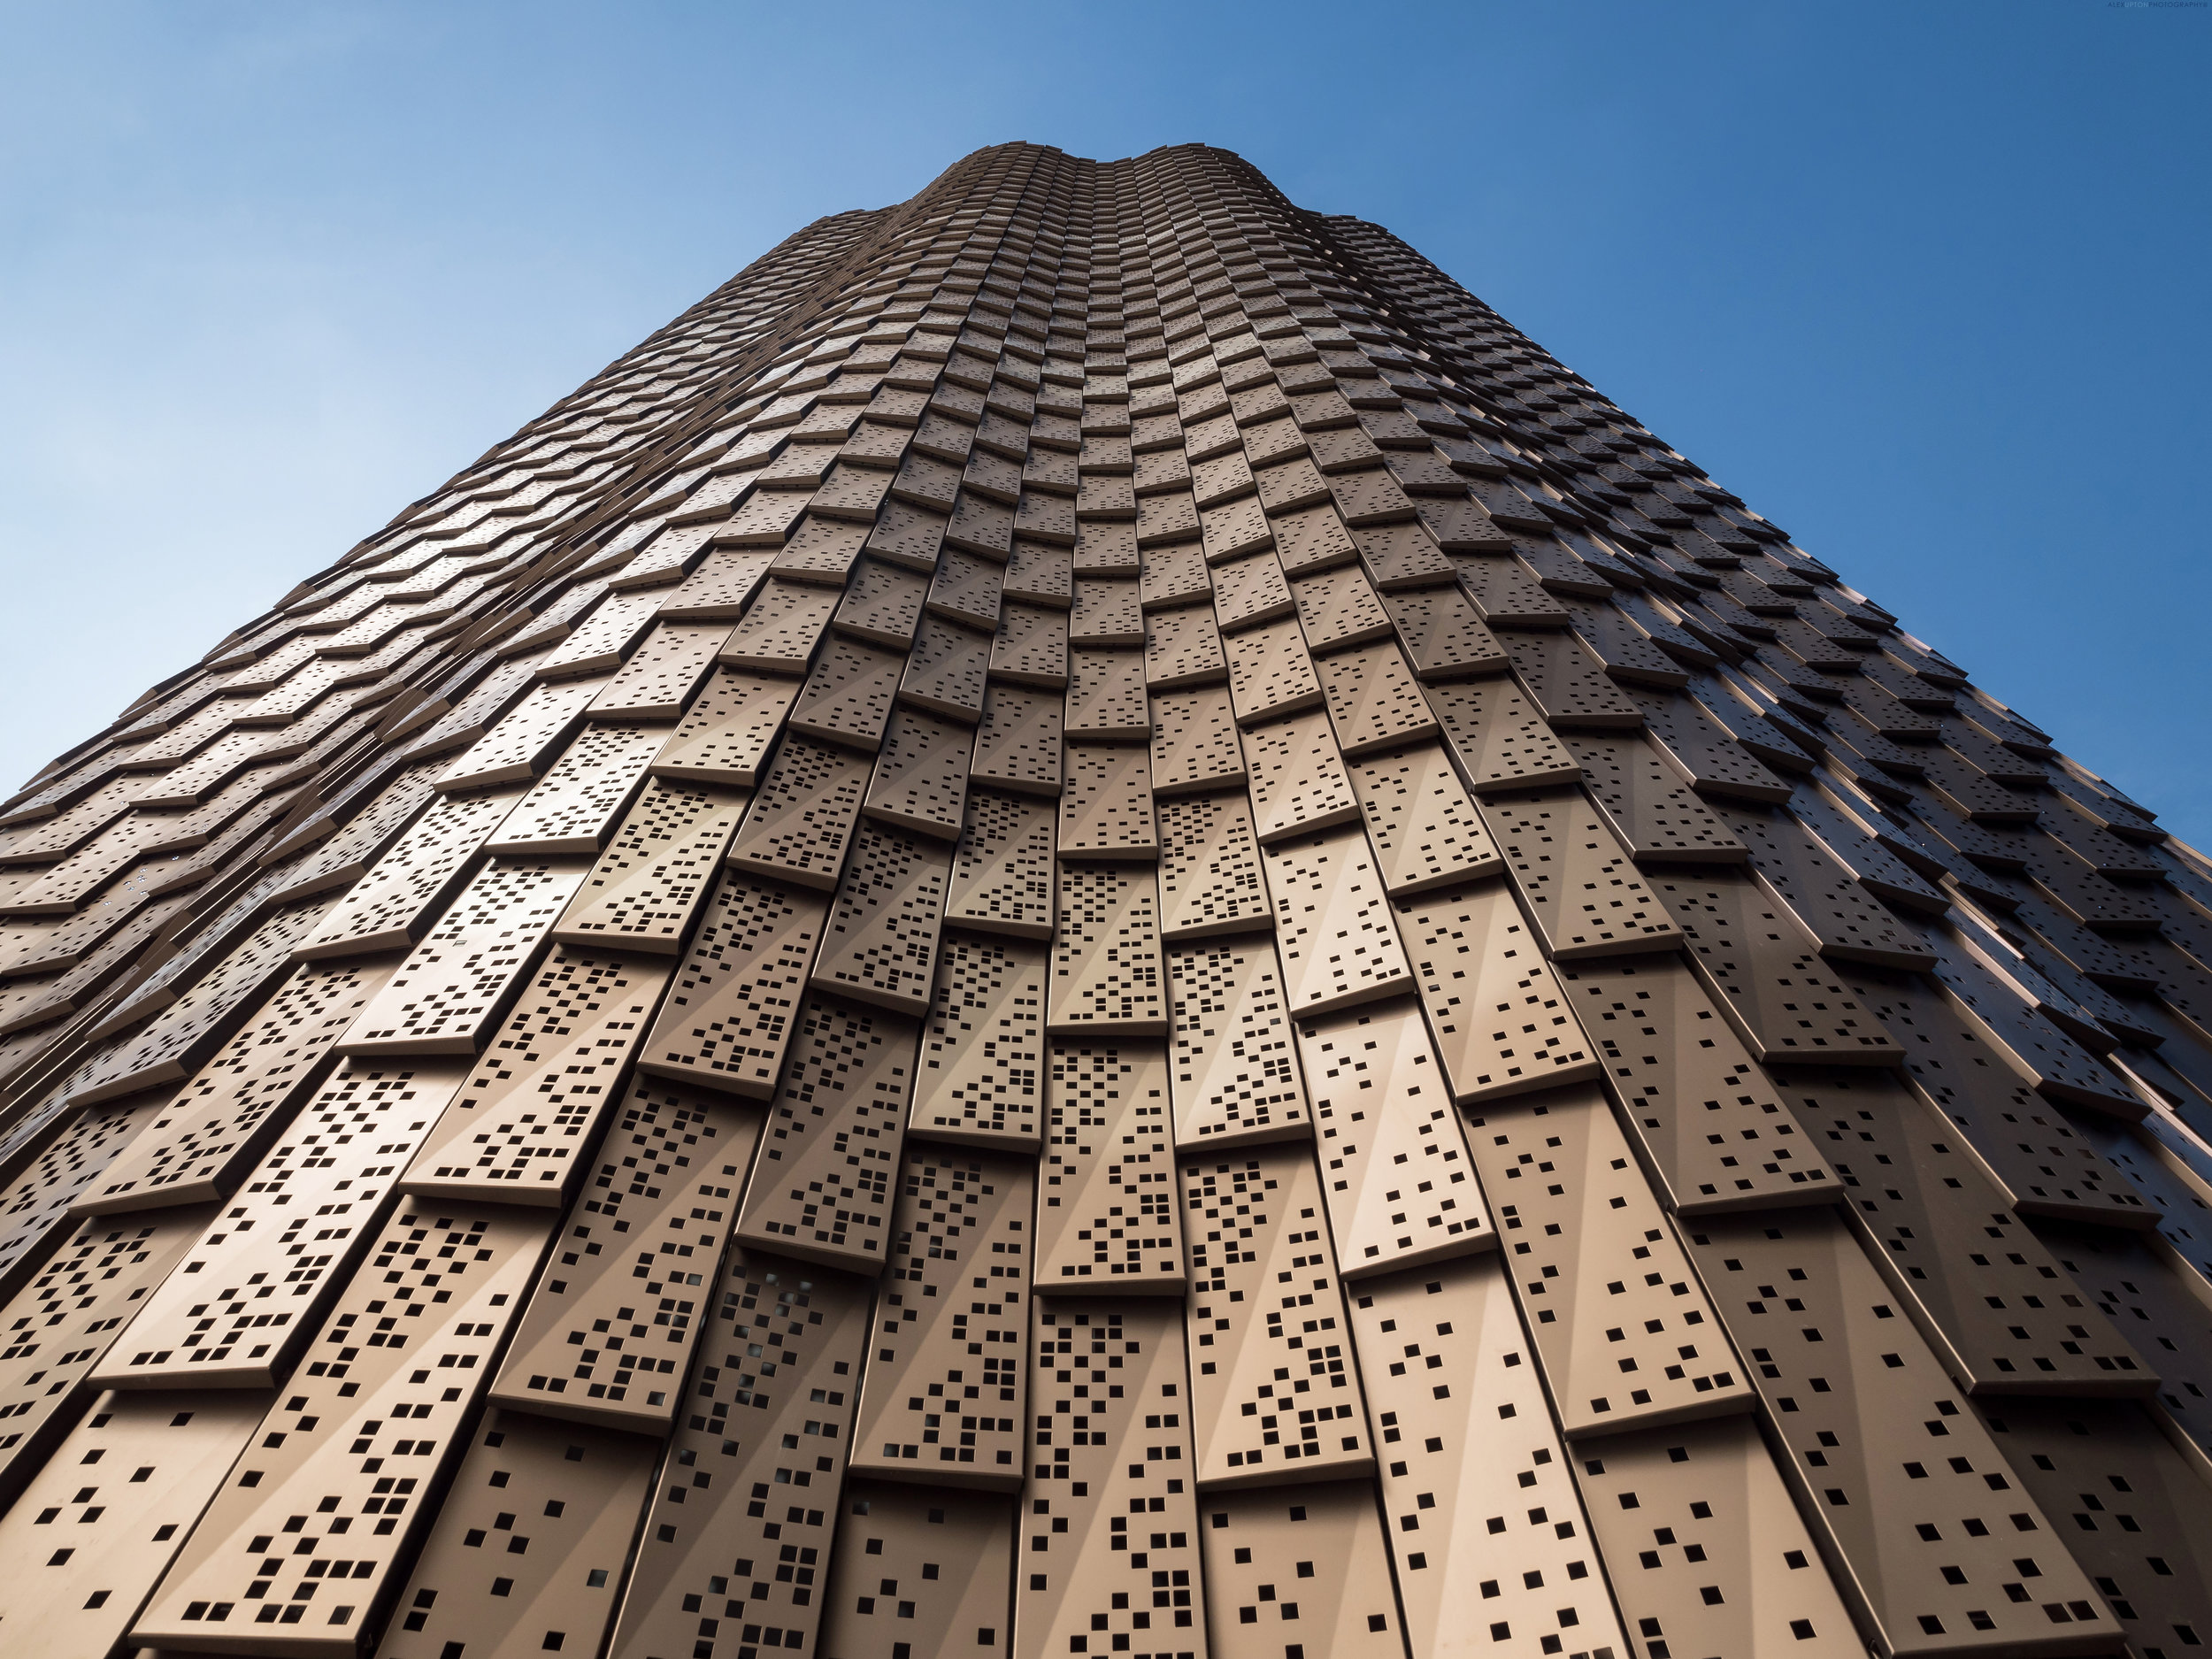 Thousands of perforated aluminium panels cover the facade.